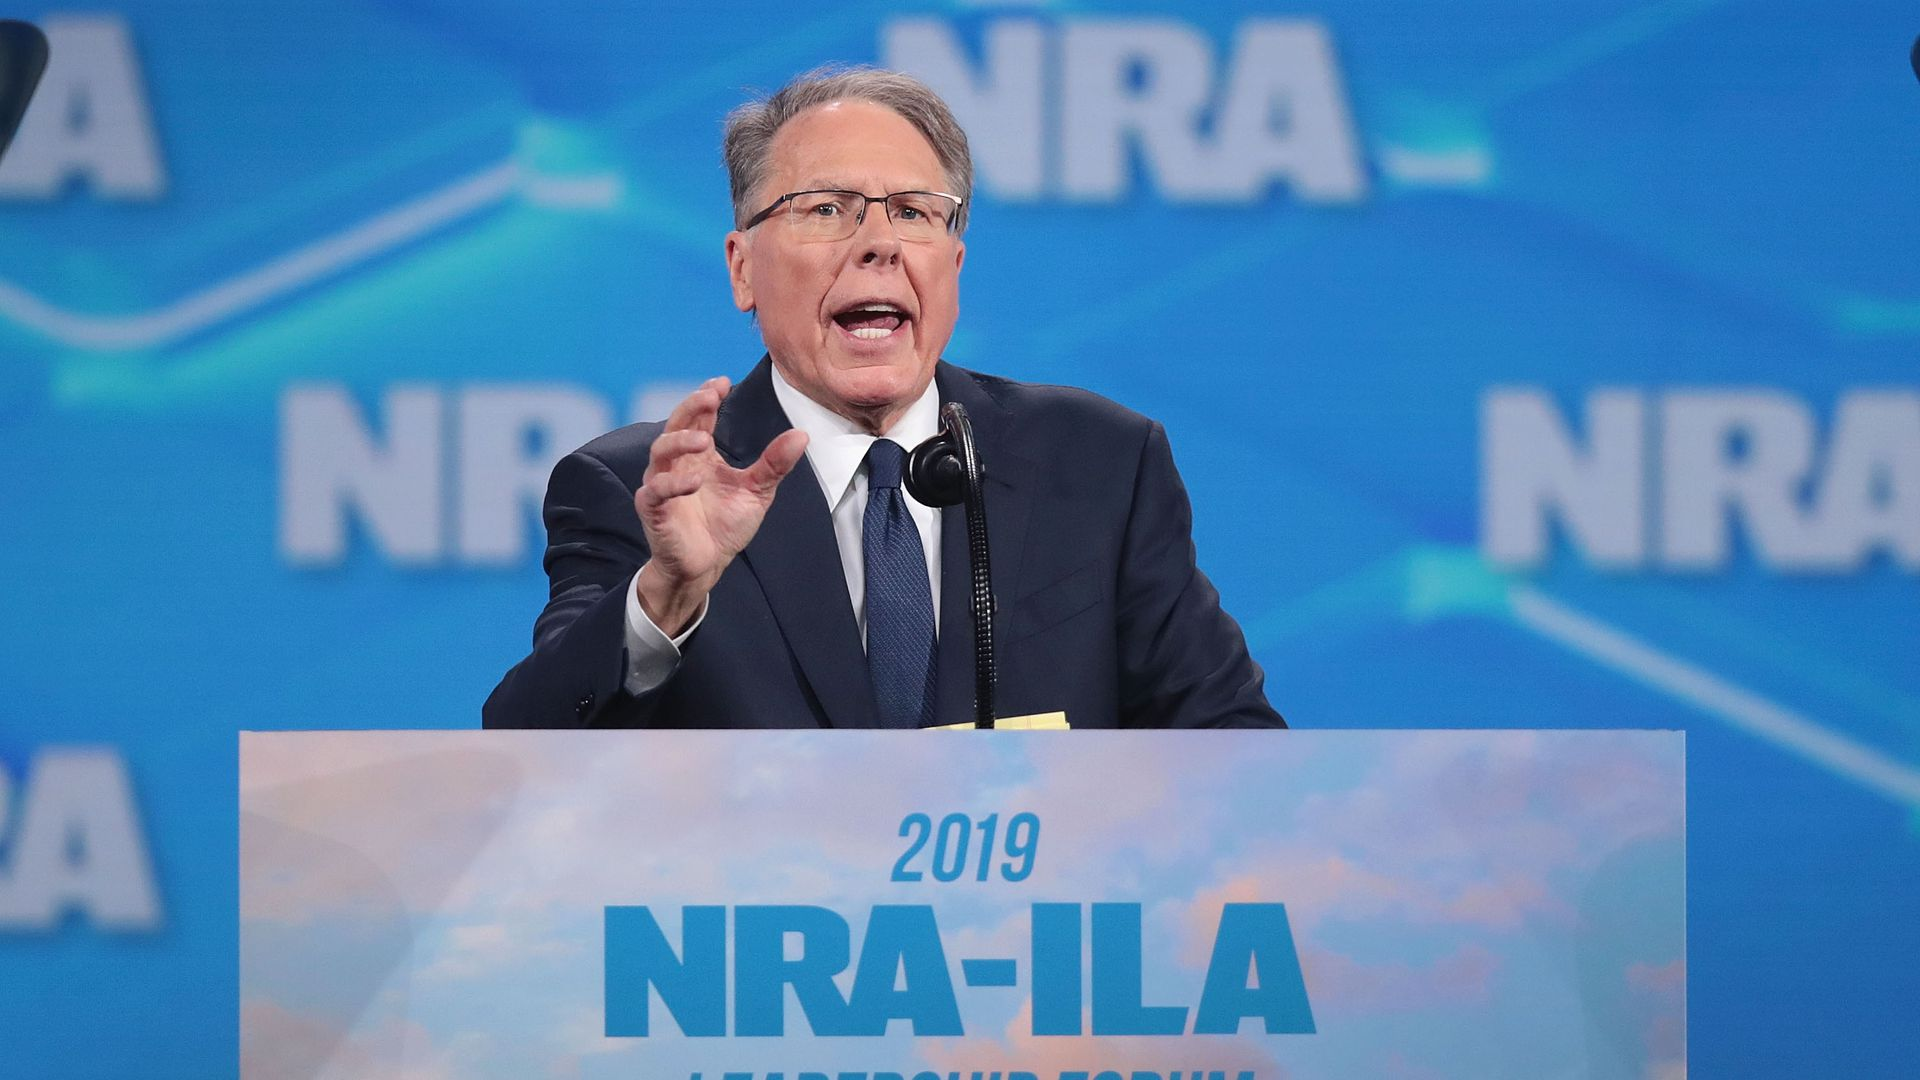 NRA executive Wayne LaPierre